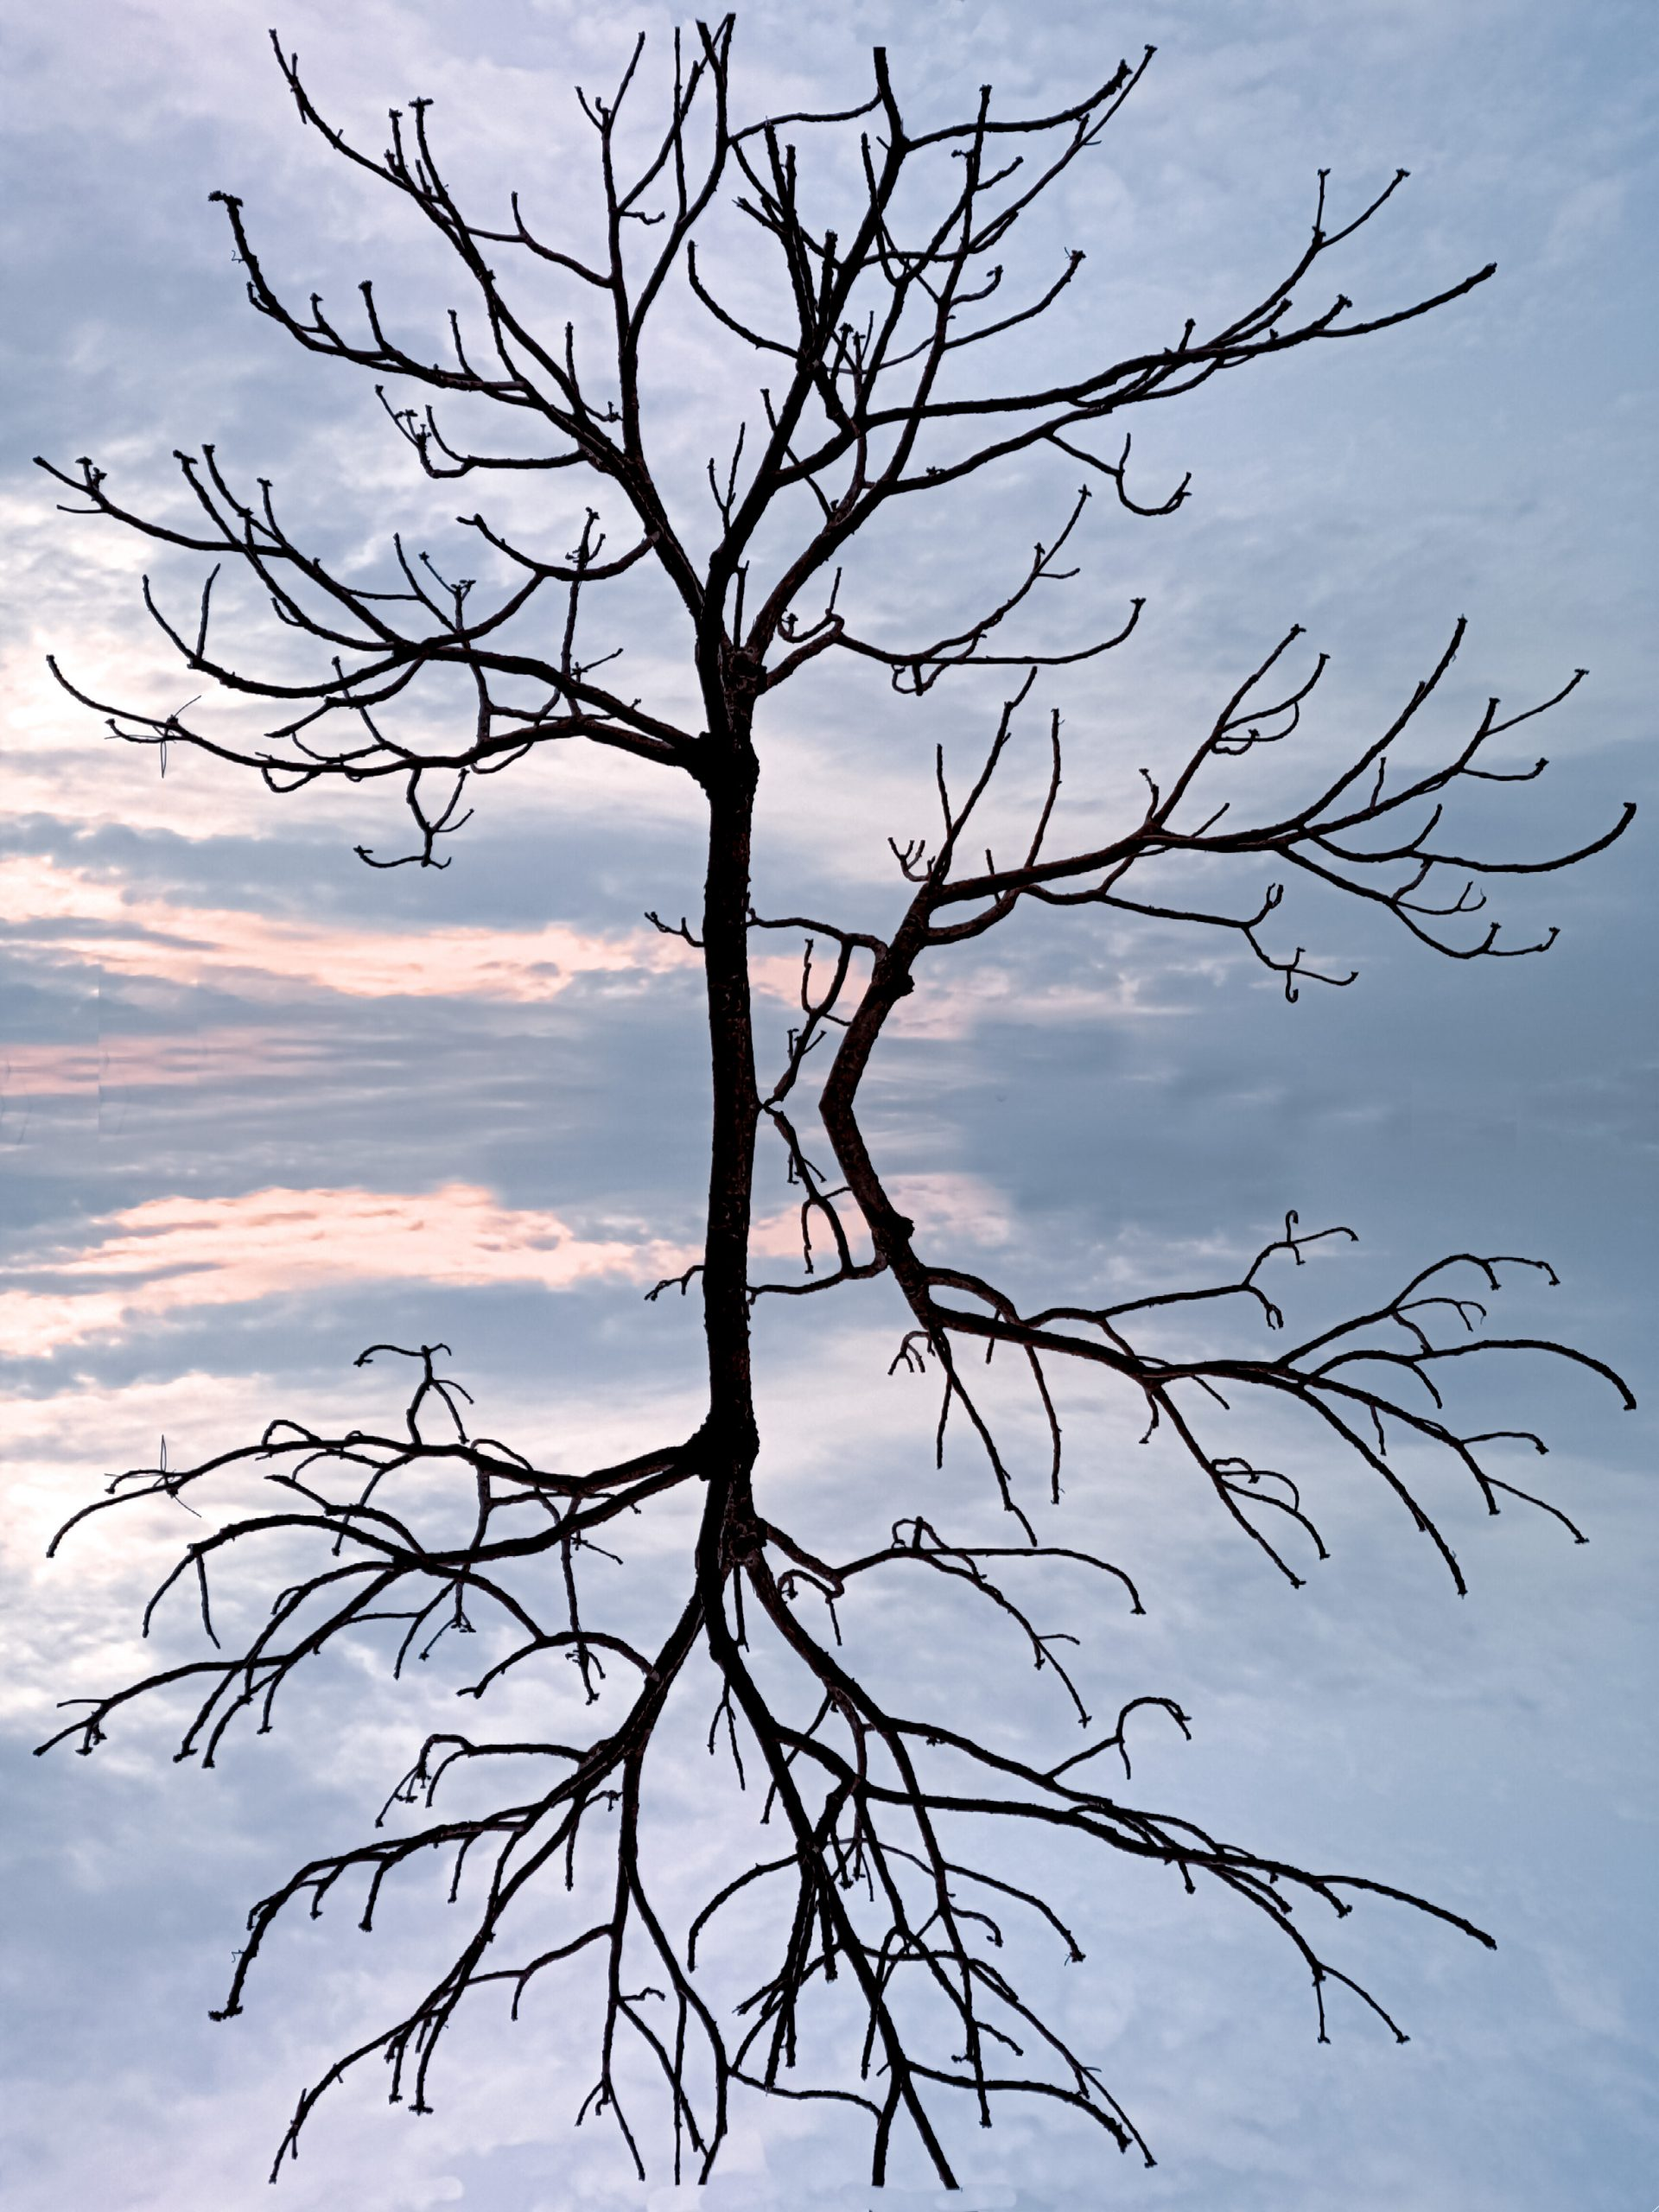 A dry tree reflection